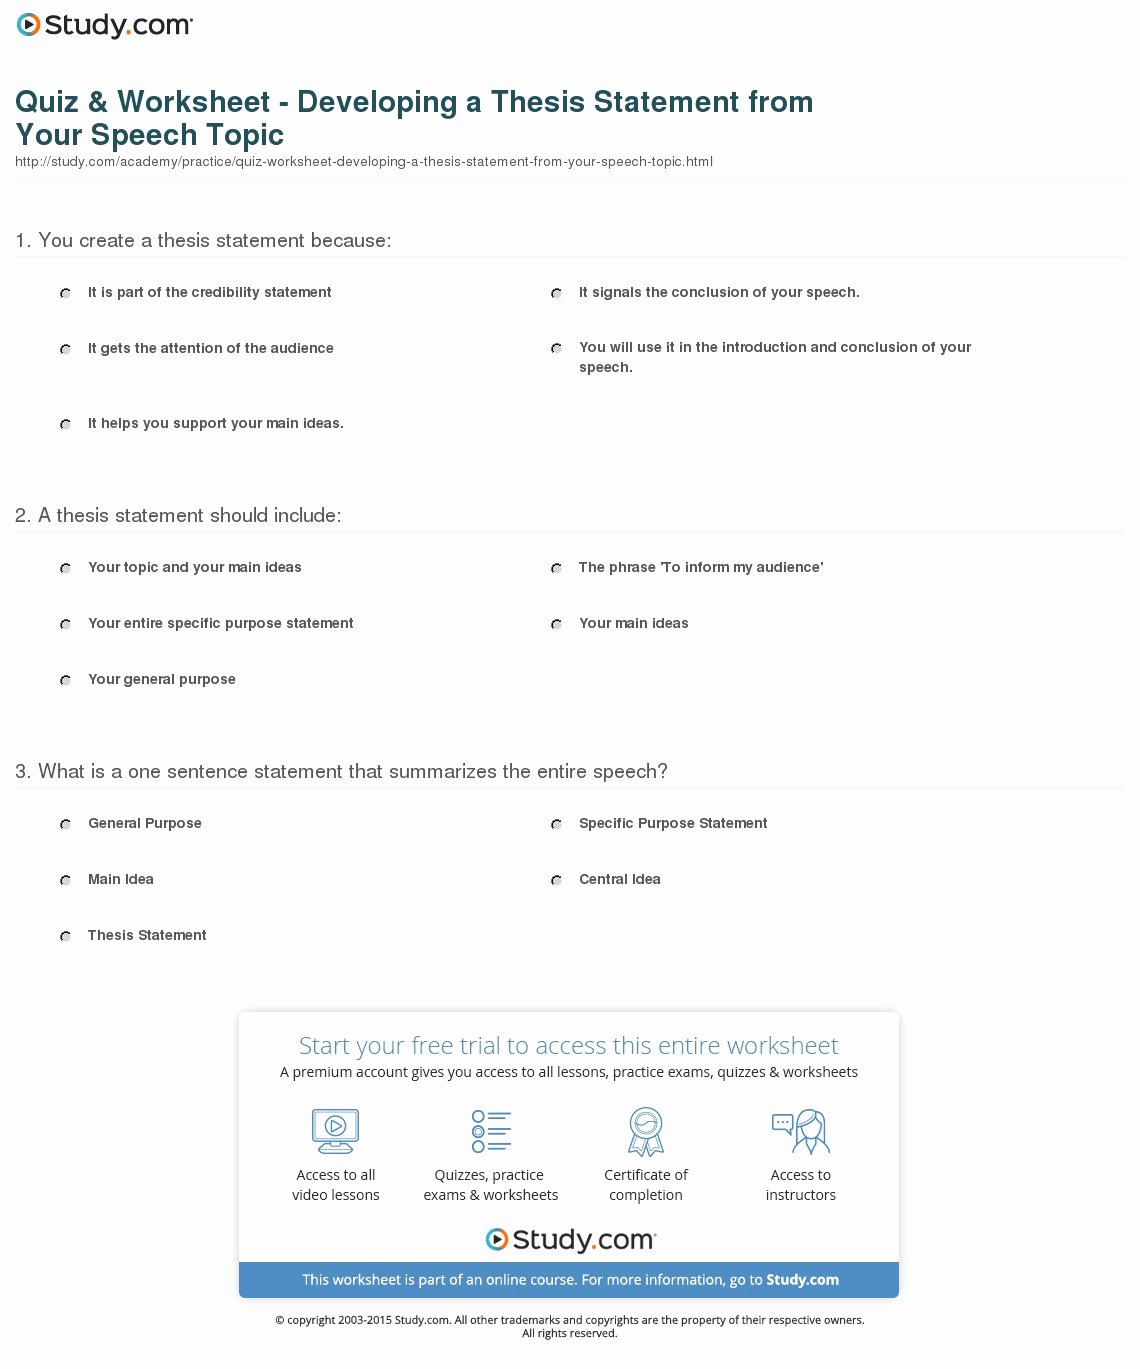 Thesis Statement Practice Worksheet Unique Quiz & Worksheet Developing A thesis Statement From Your